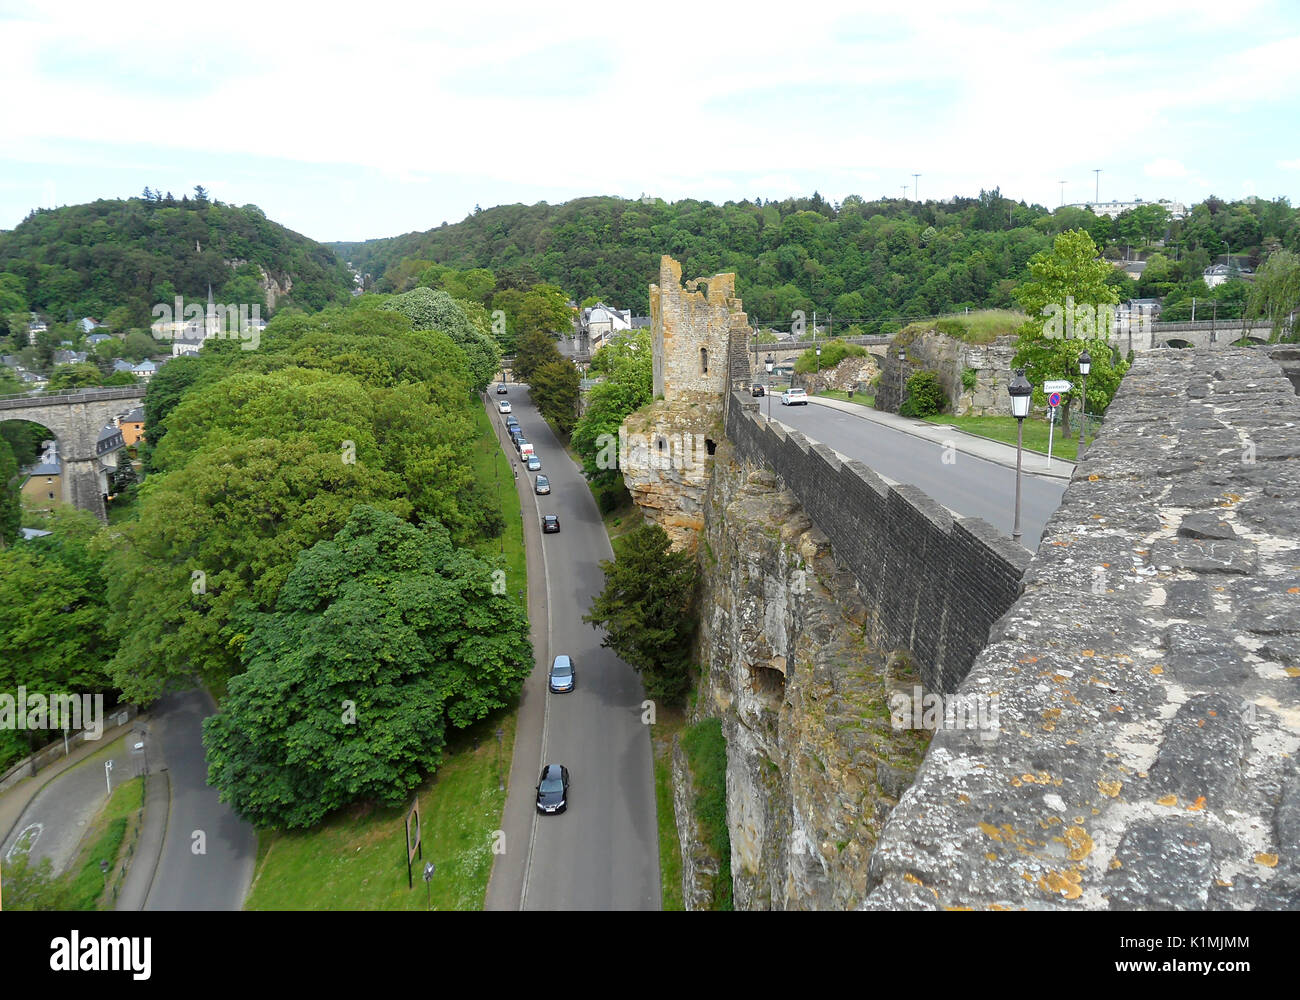 The Hollow Tooth' Ruin View from the Bock Casemates, Upper Town of Luxembourg City, Luxembourg - Stock Image